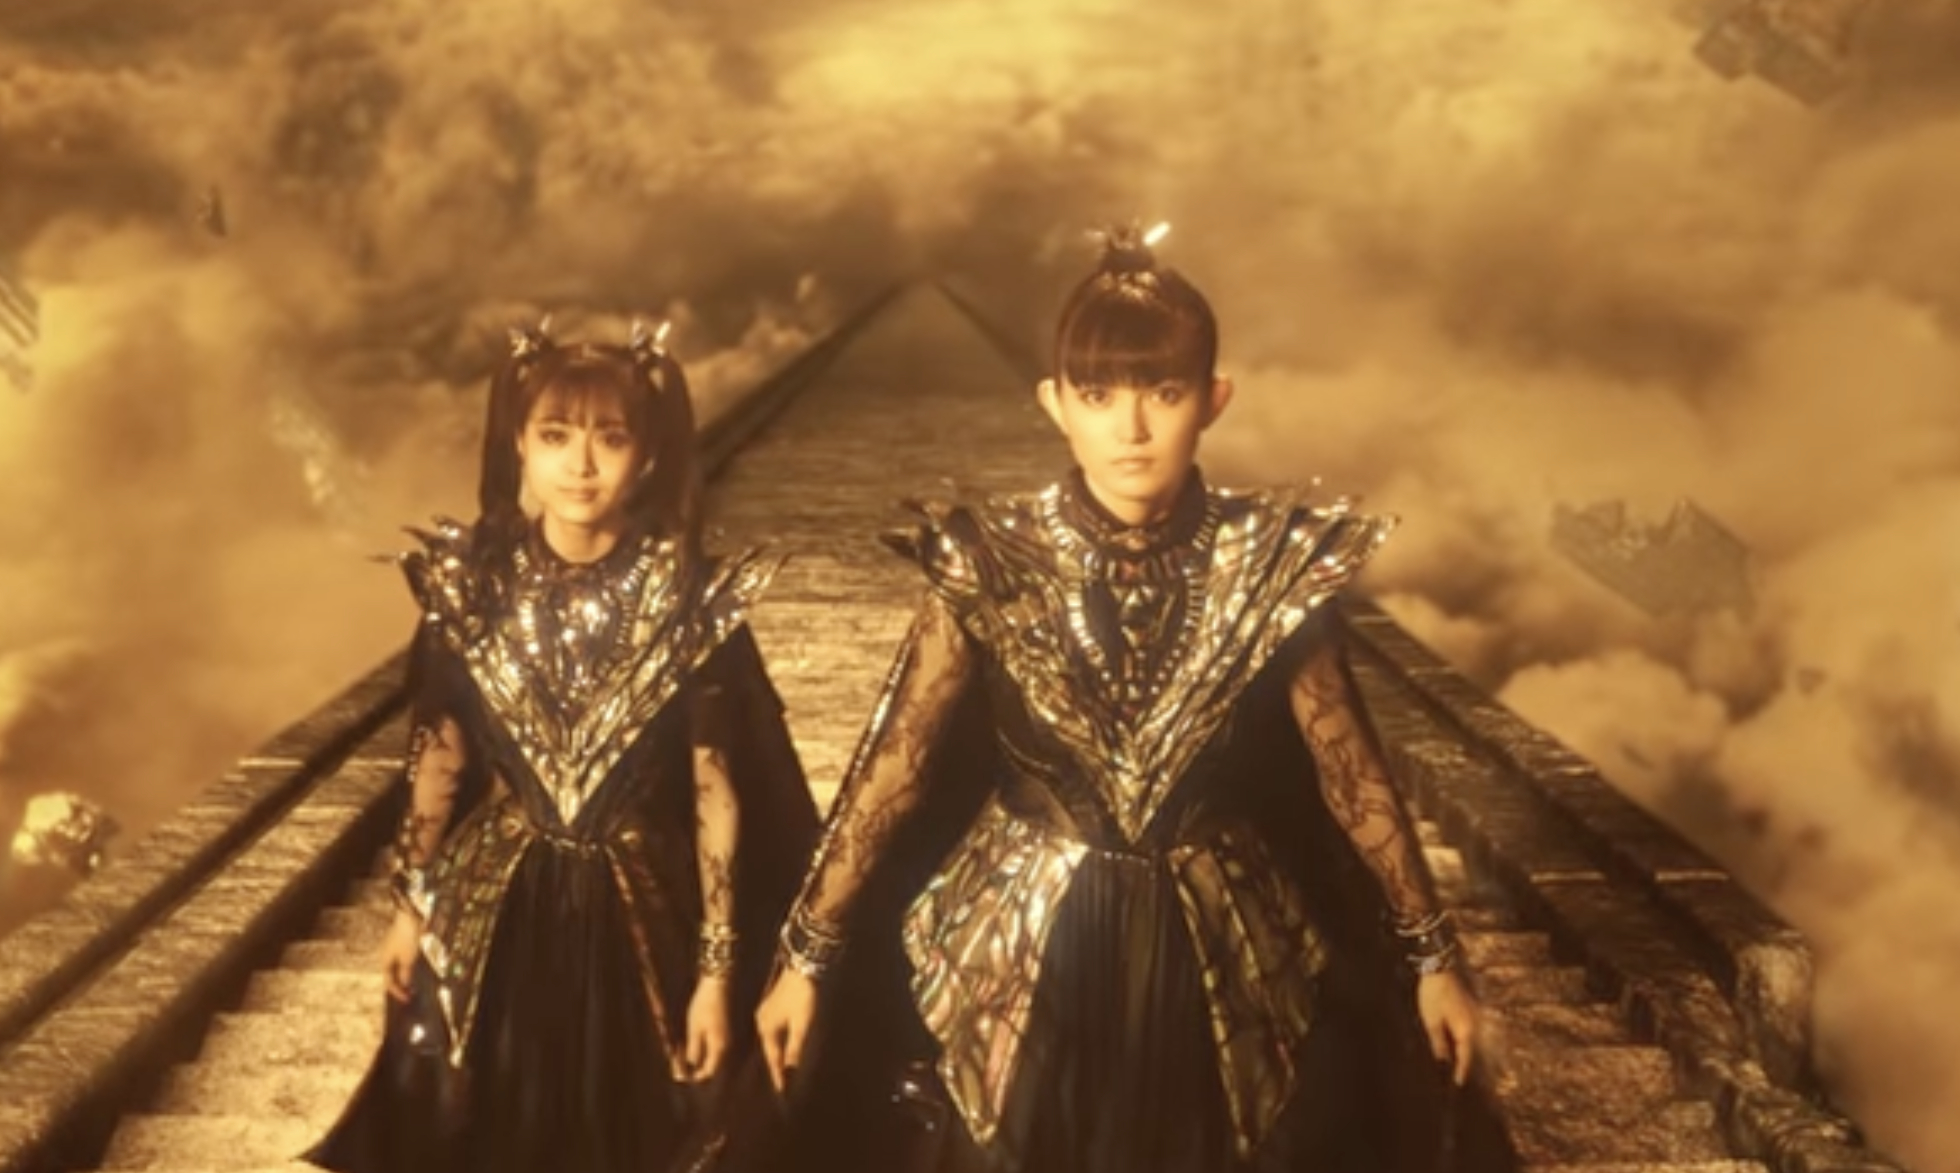 WATCH: BABYMETAL's Emotionally Stunning Video For 'The One'